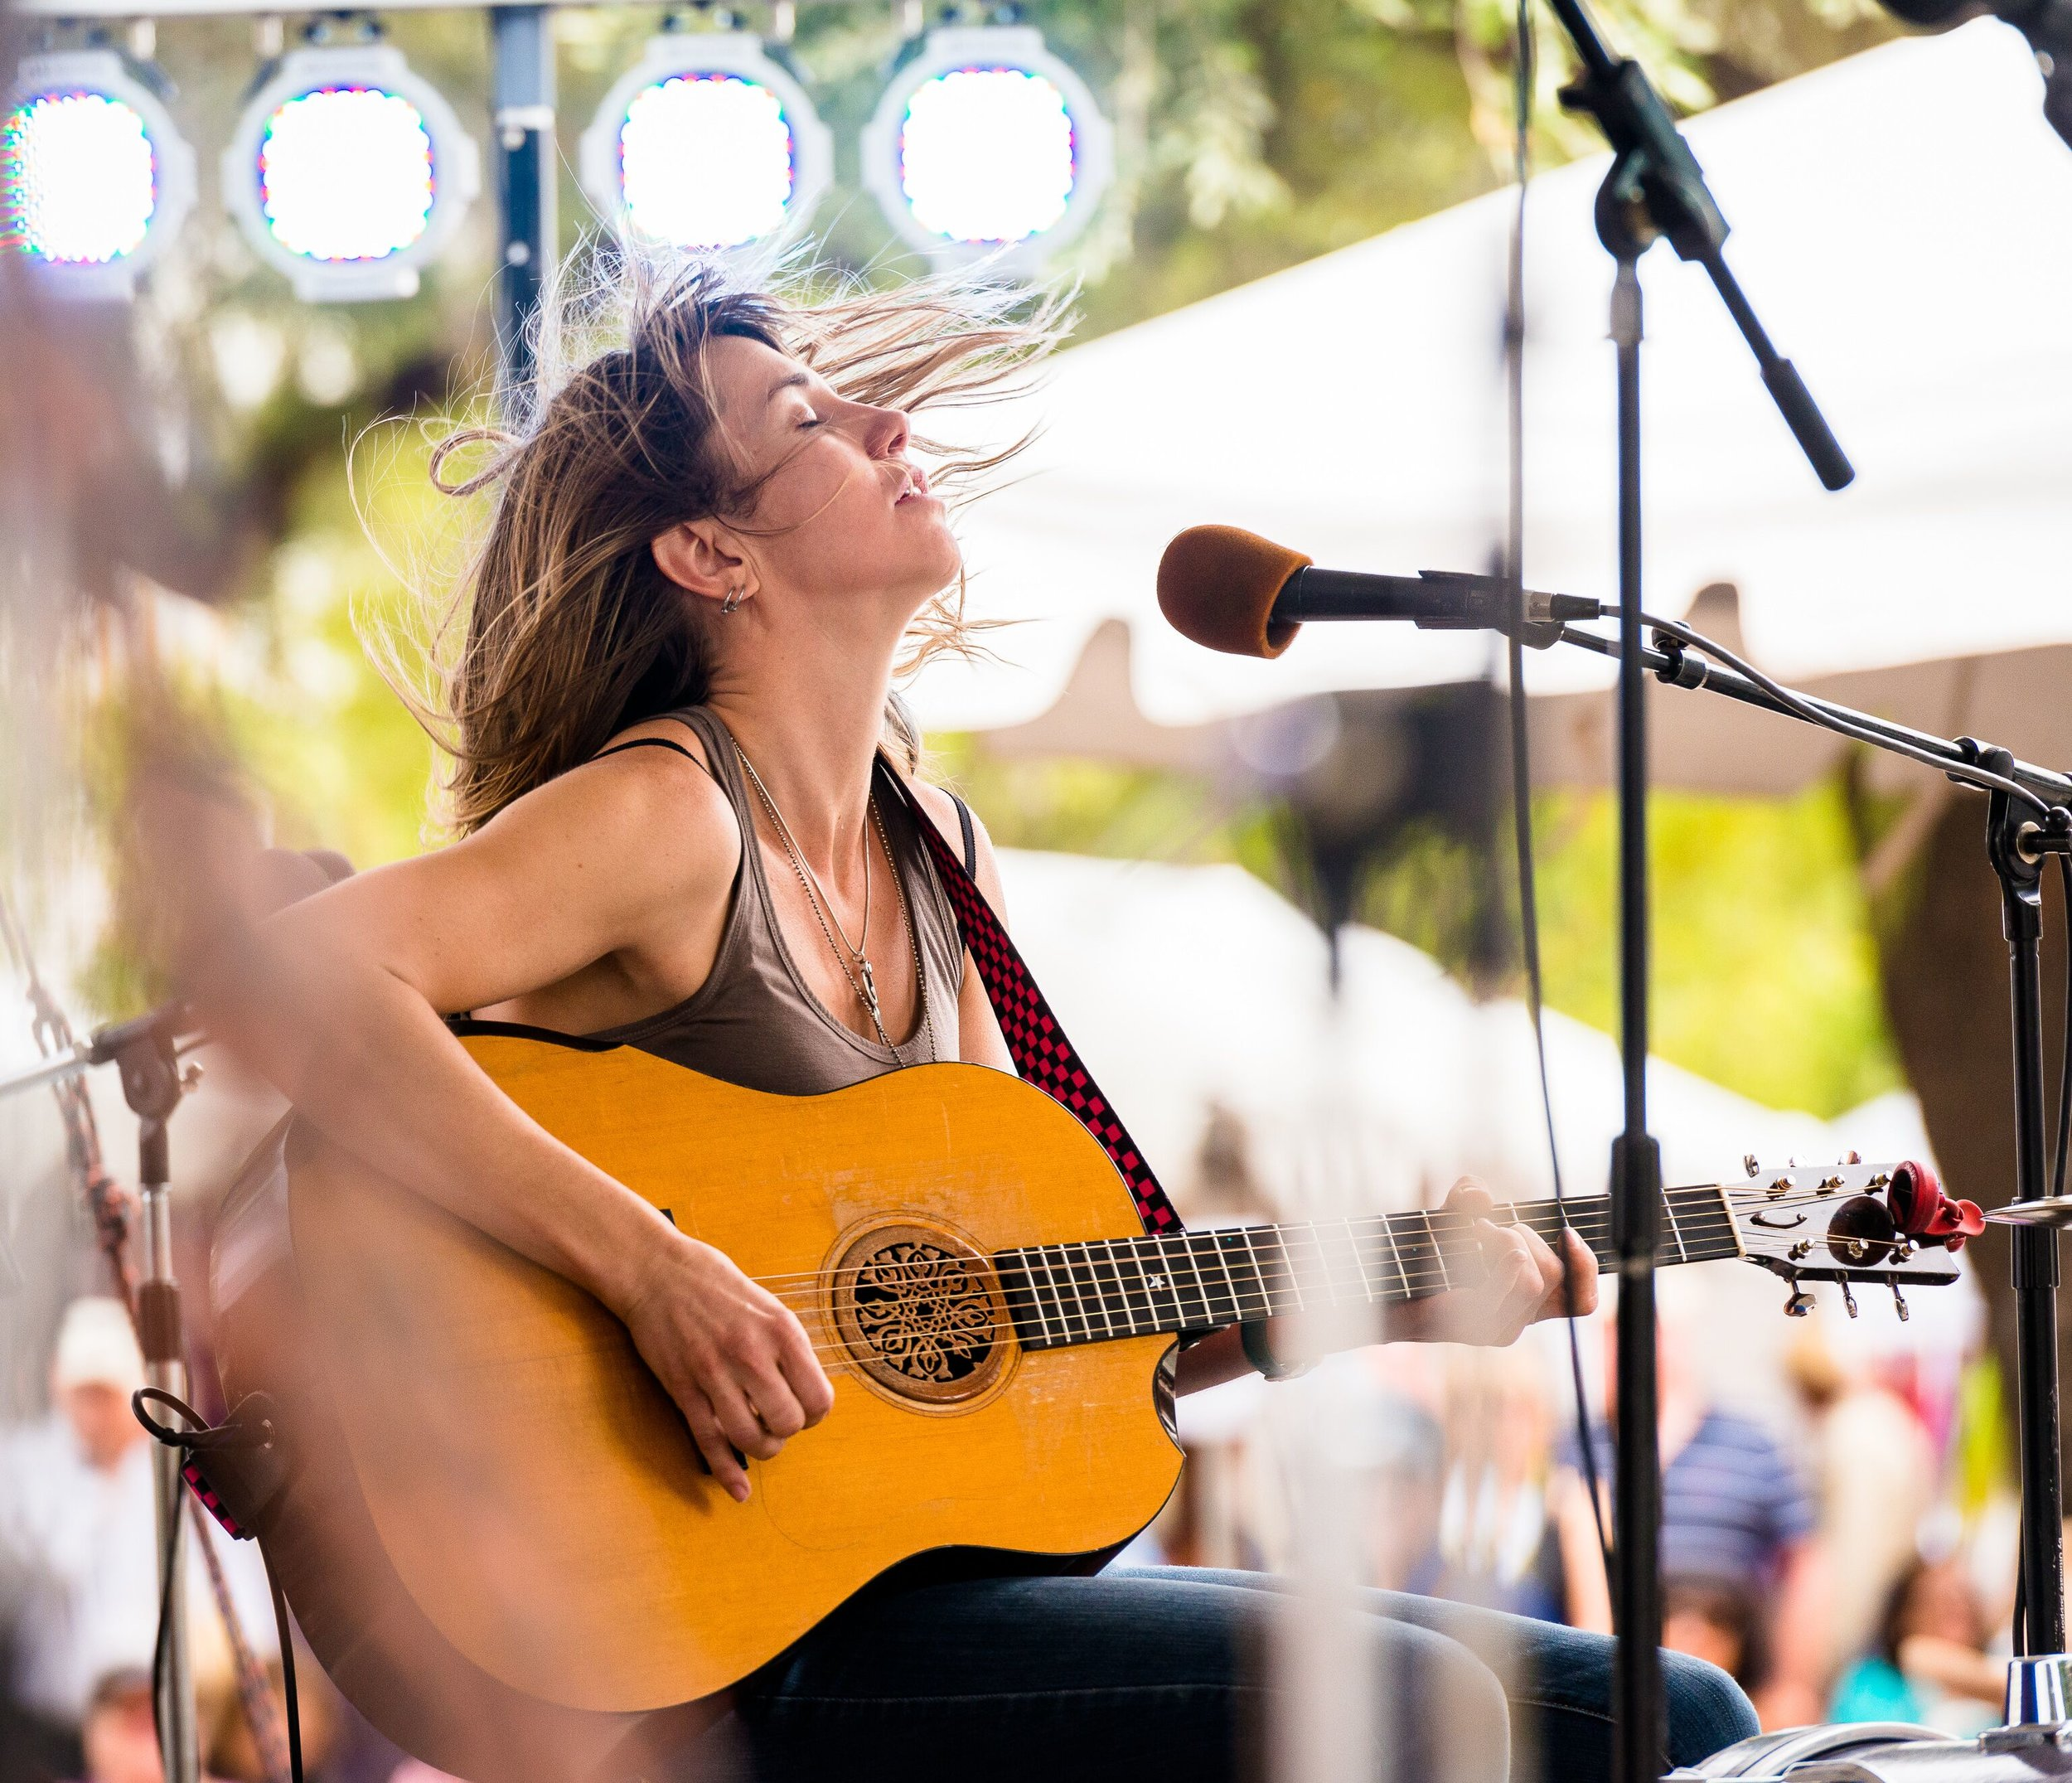 Tiffany_Christopher_tucson_folk_fest_HIREZ.jpg